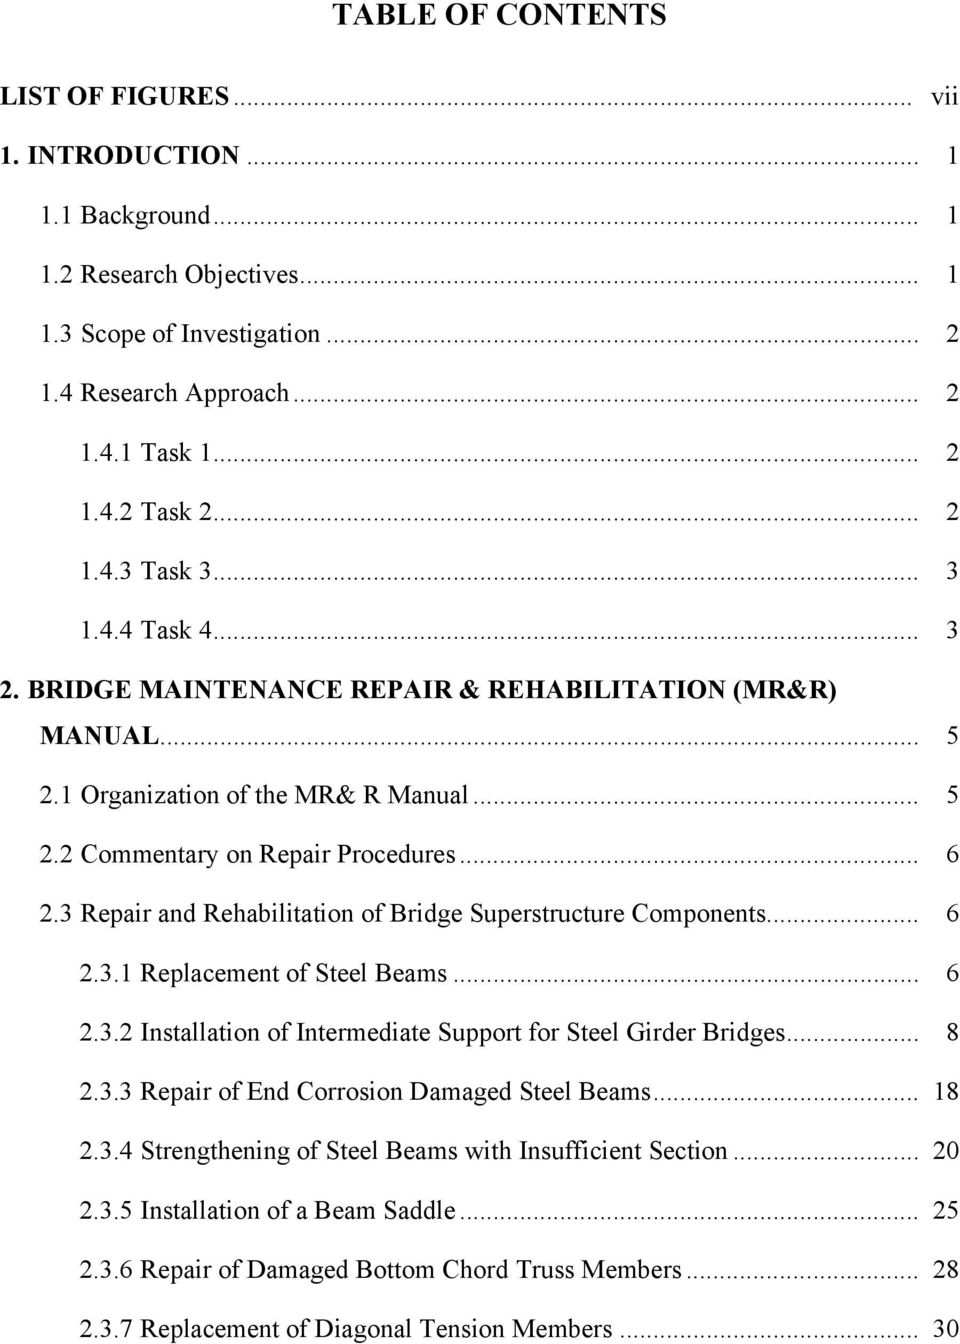 3 Repair and Rehabilitation of Bridge Superstructure Components... 6 2.3.1 Replacement of Steel Beams... 6 2.3.2 Installation of Intermediate Support for Steel Girder Bridges... 8 2.3.3 Repair of End Corrosion Damaged Steel Beams.